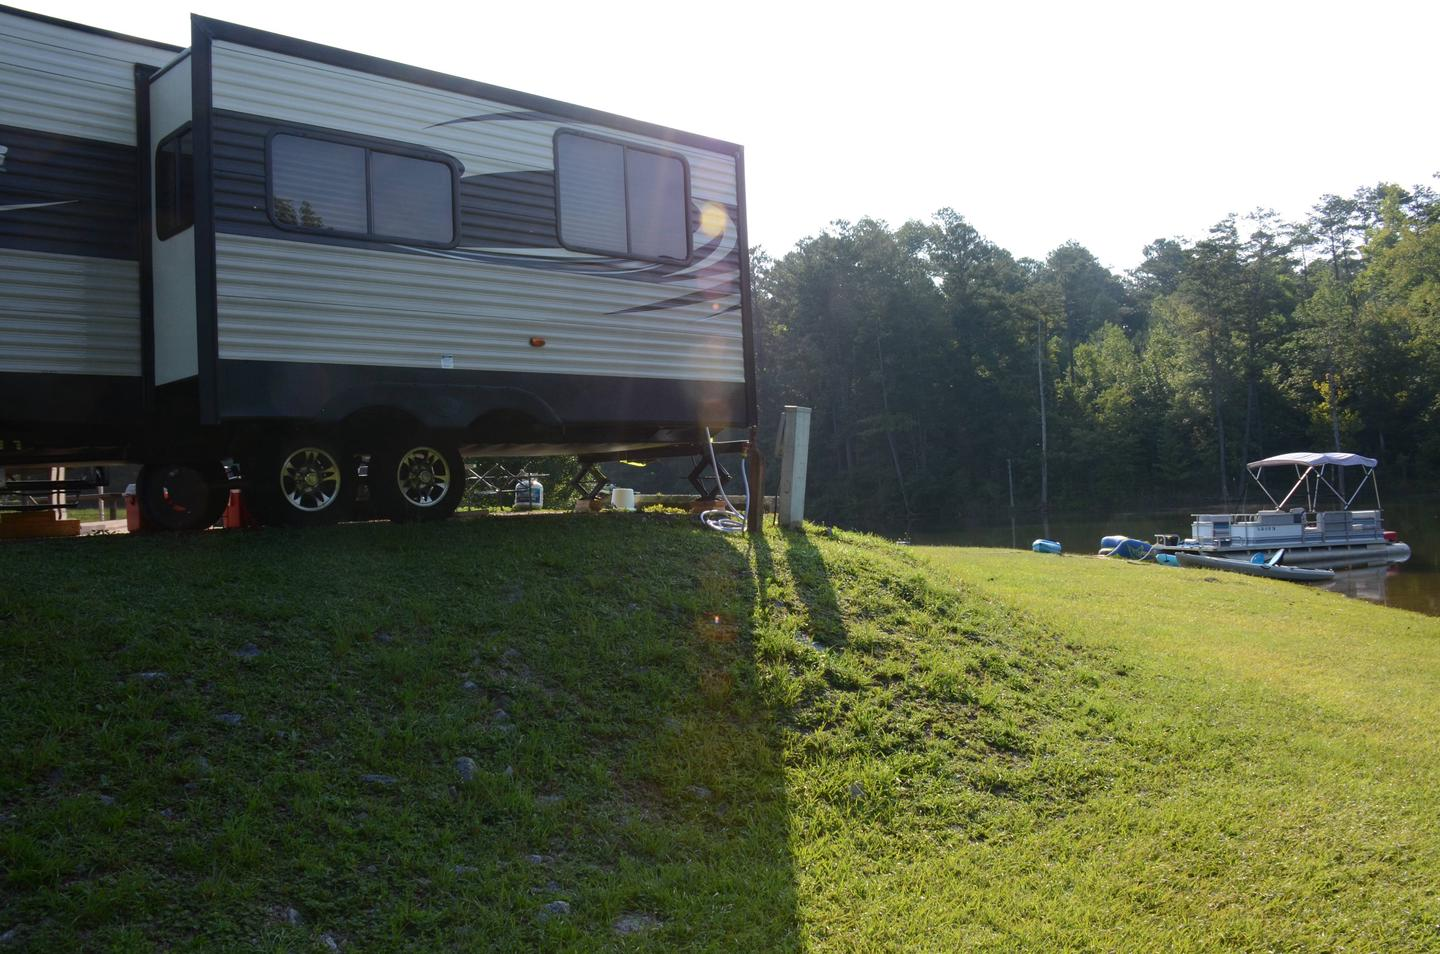 Utilities-side clearance 2.Payne Campground, campsite 11.